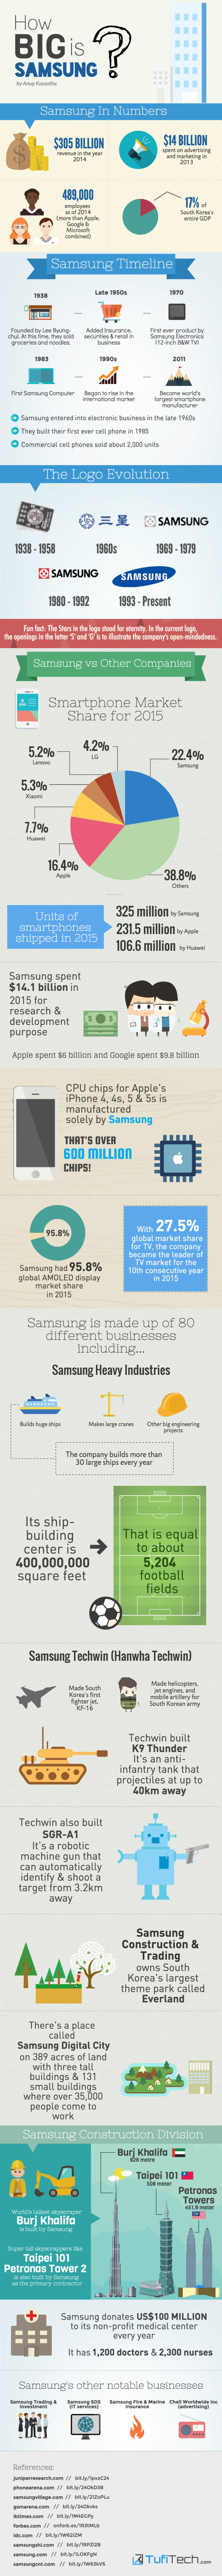 How-Big-Is-Samsung-Infographic-e1458592303156